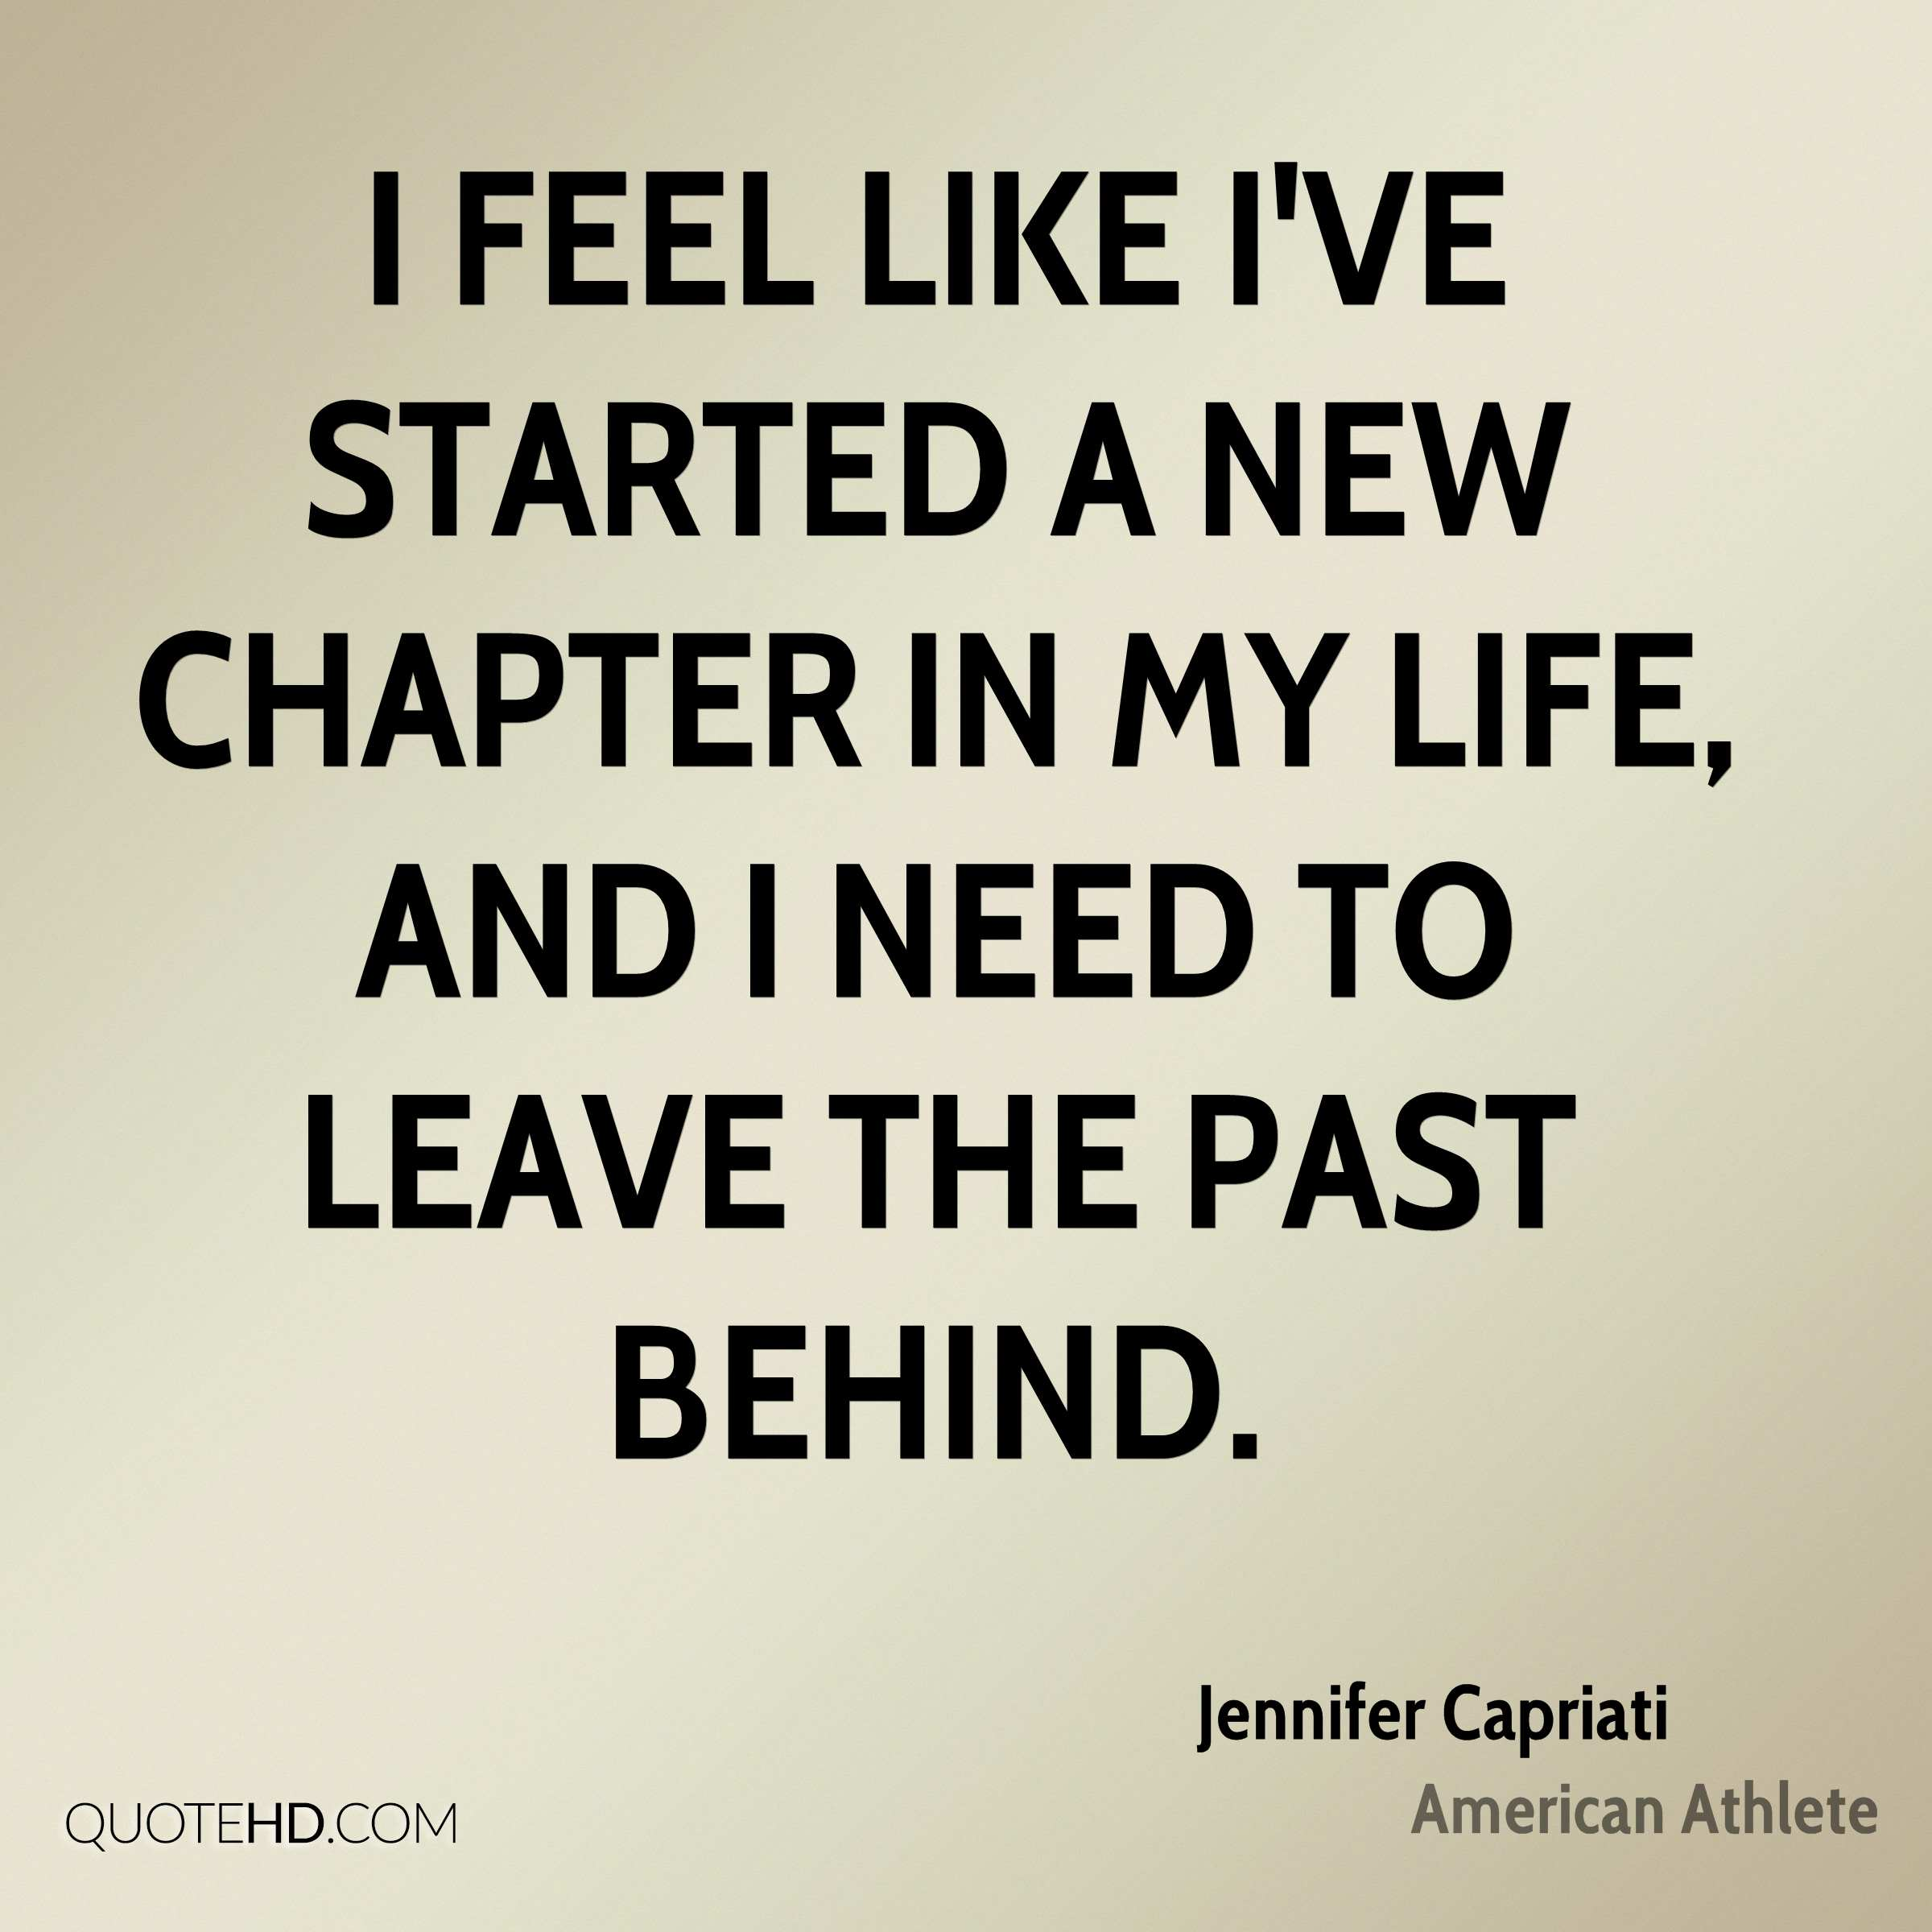 Quotes About New Life: Jennifer Capriati Quotes